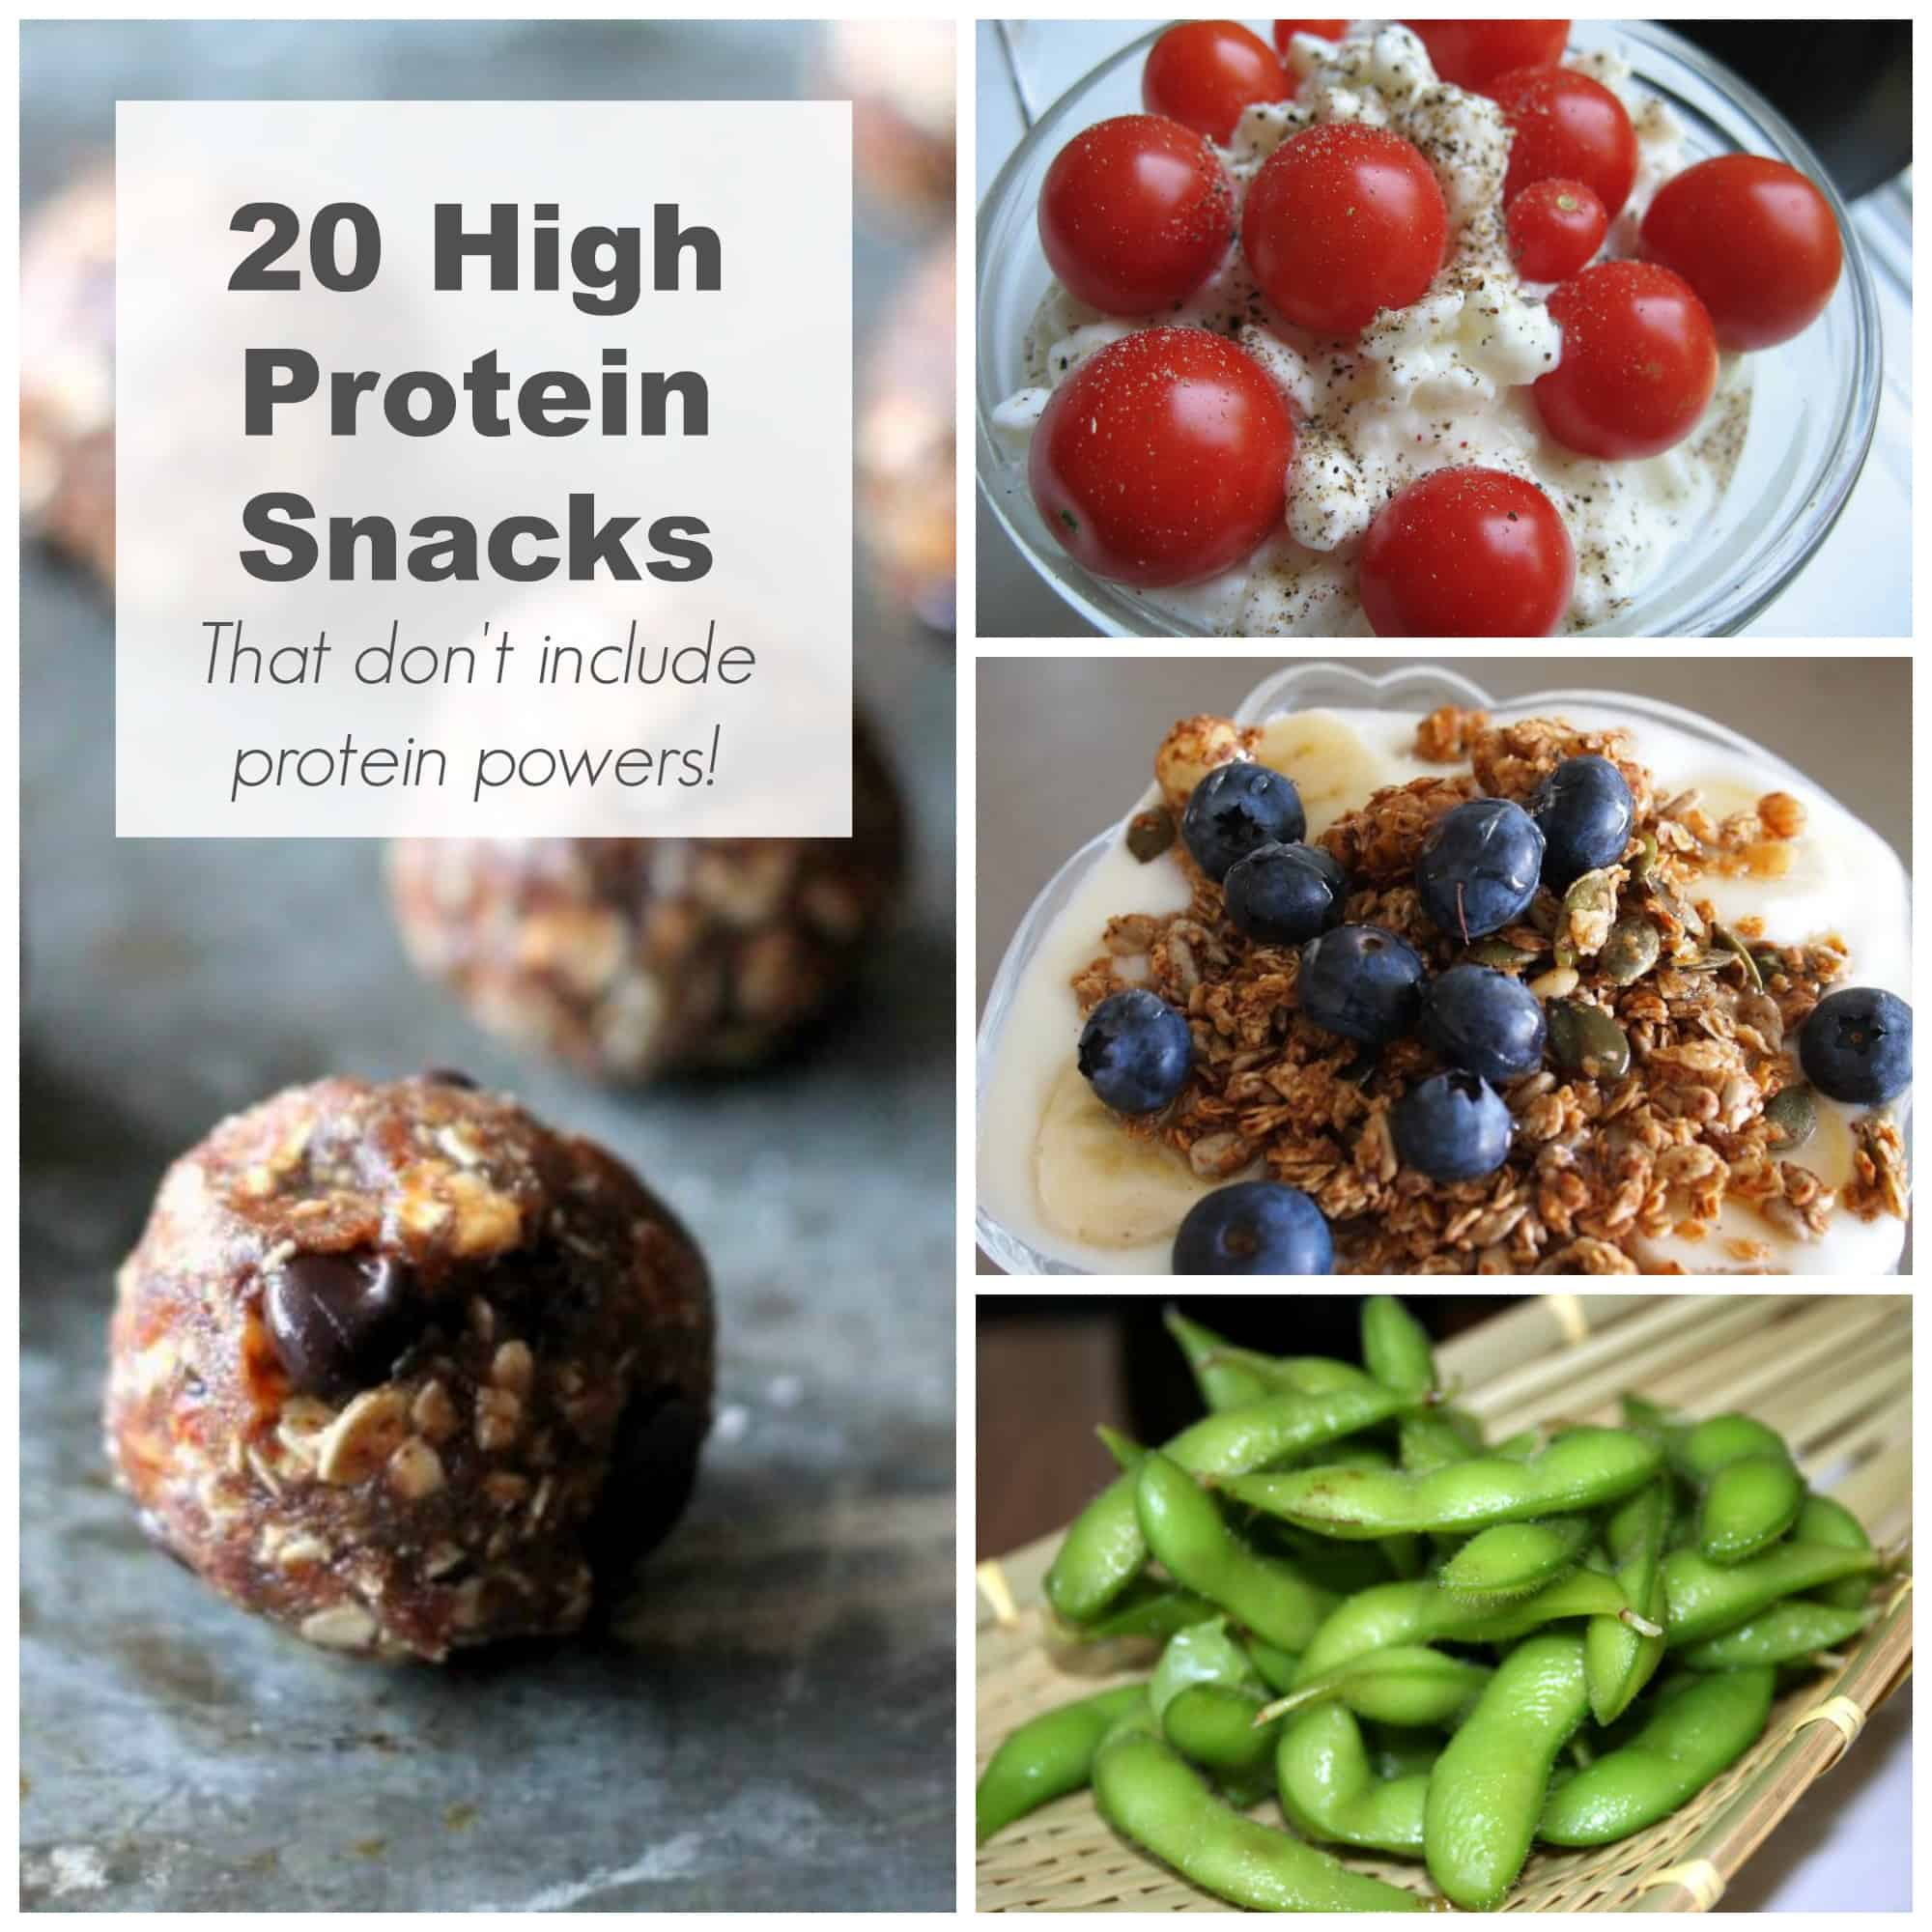 20 High Protein Snack Ideas The Organized Mom